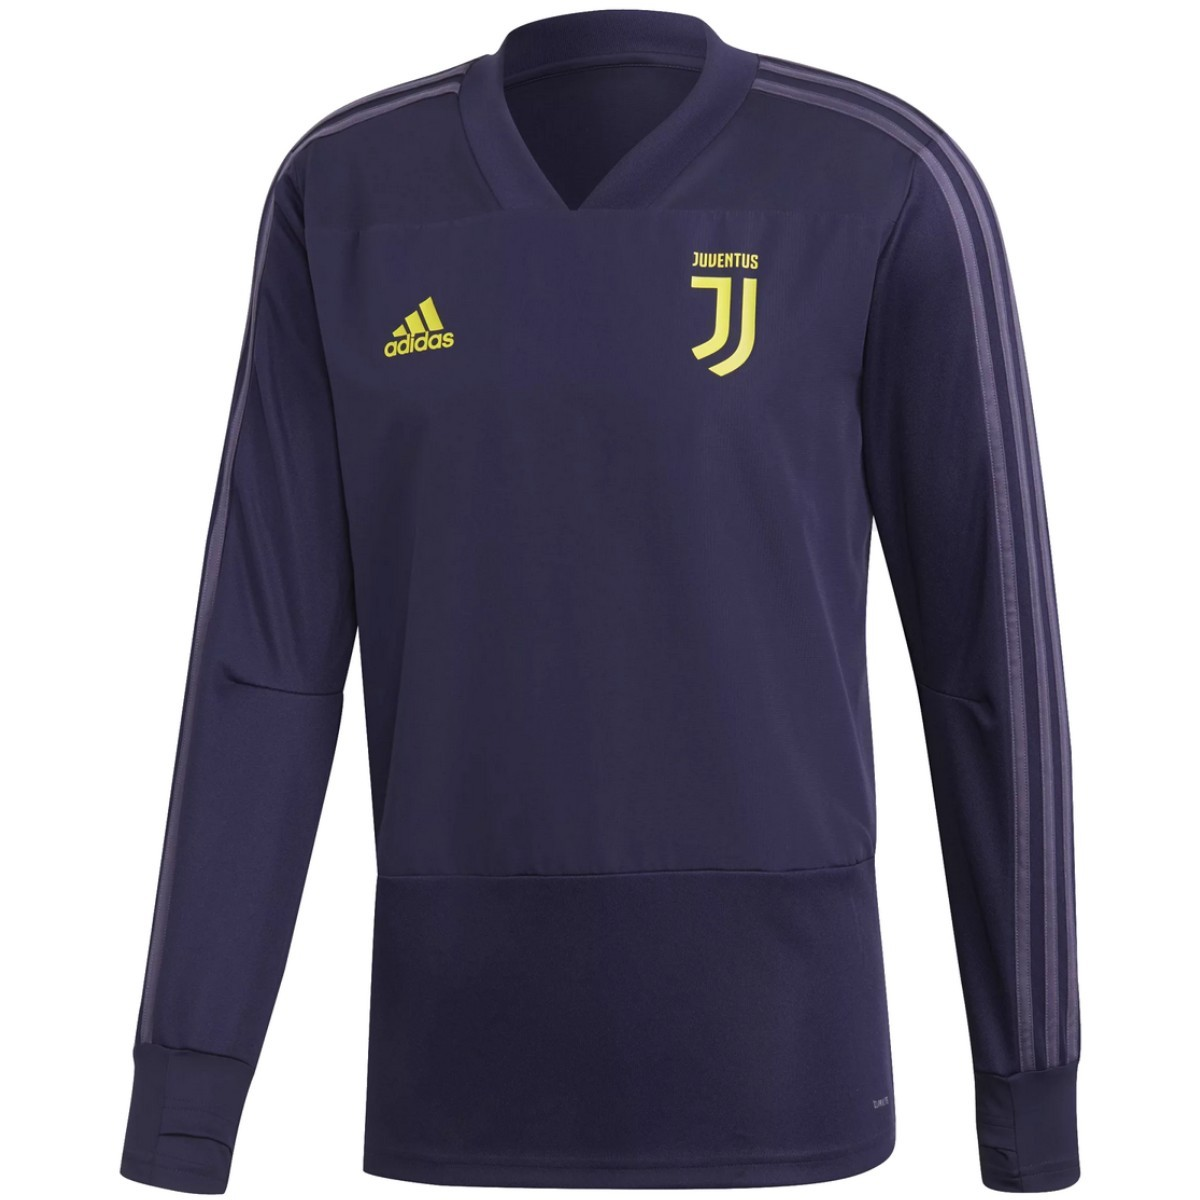 sweat juventus adidas